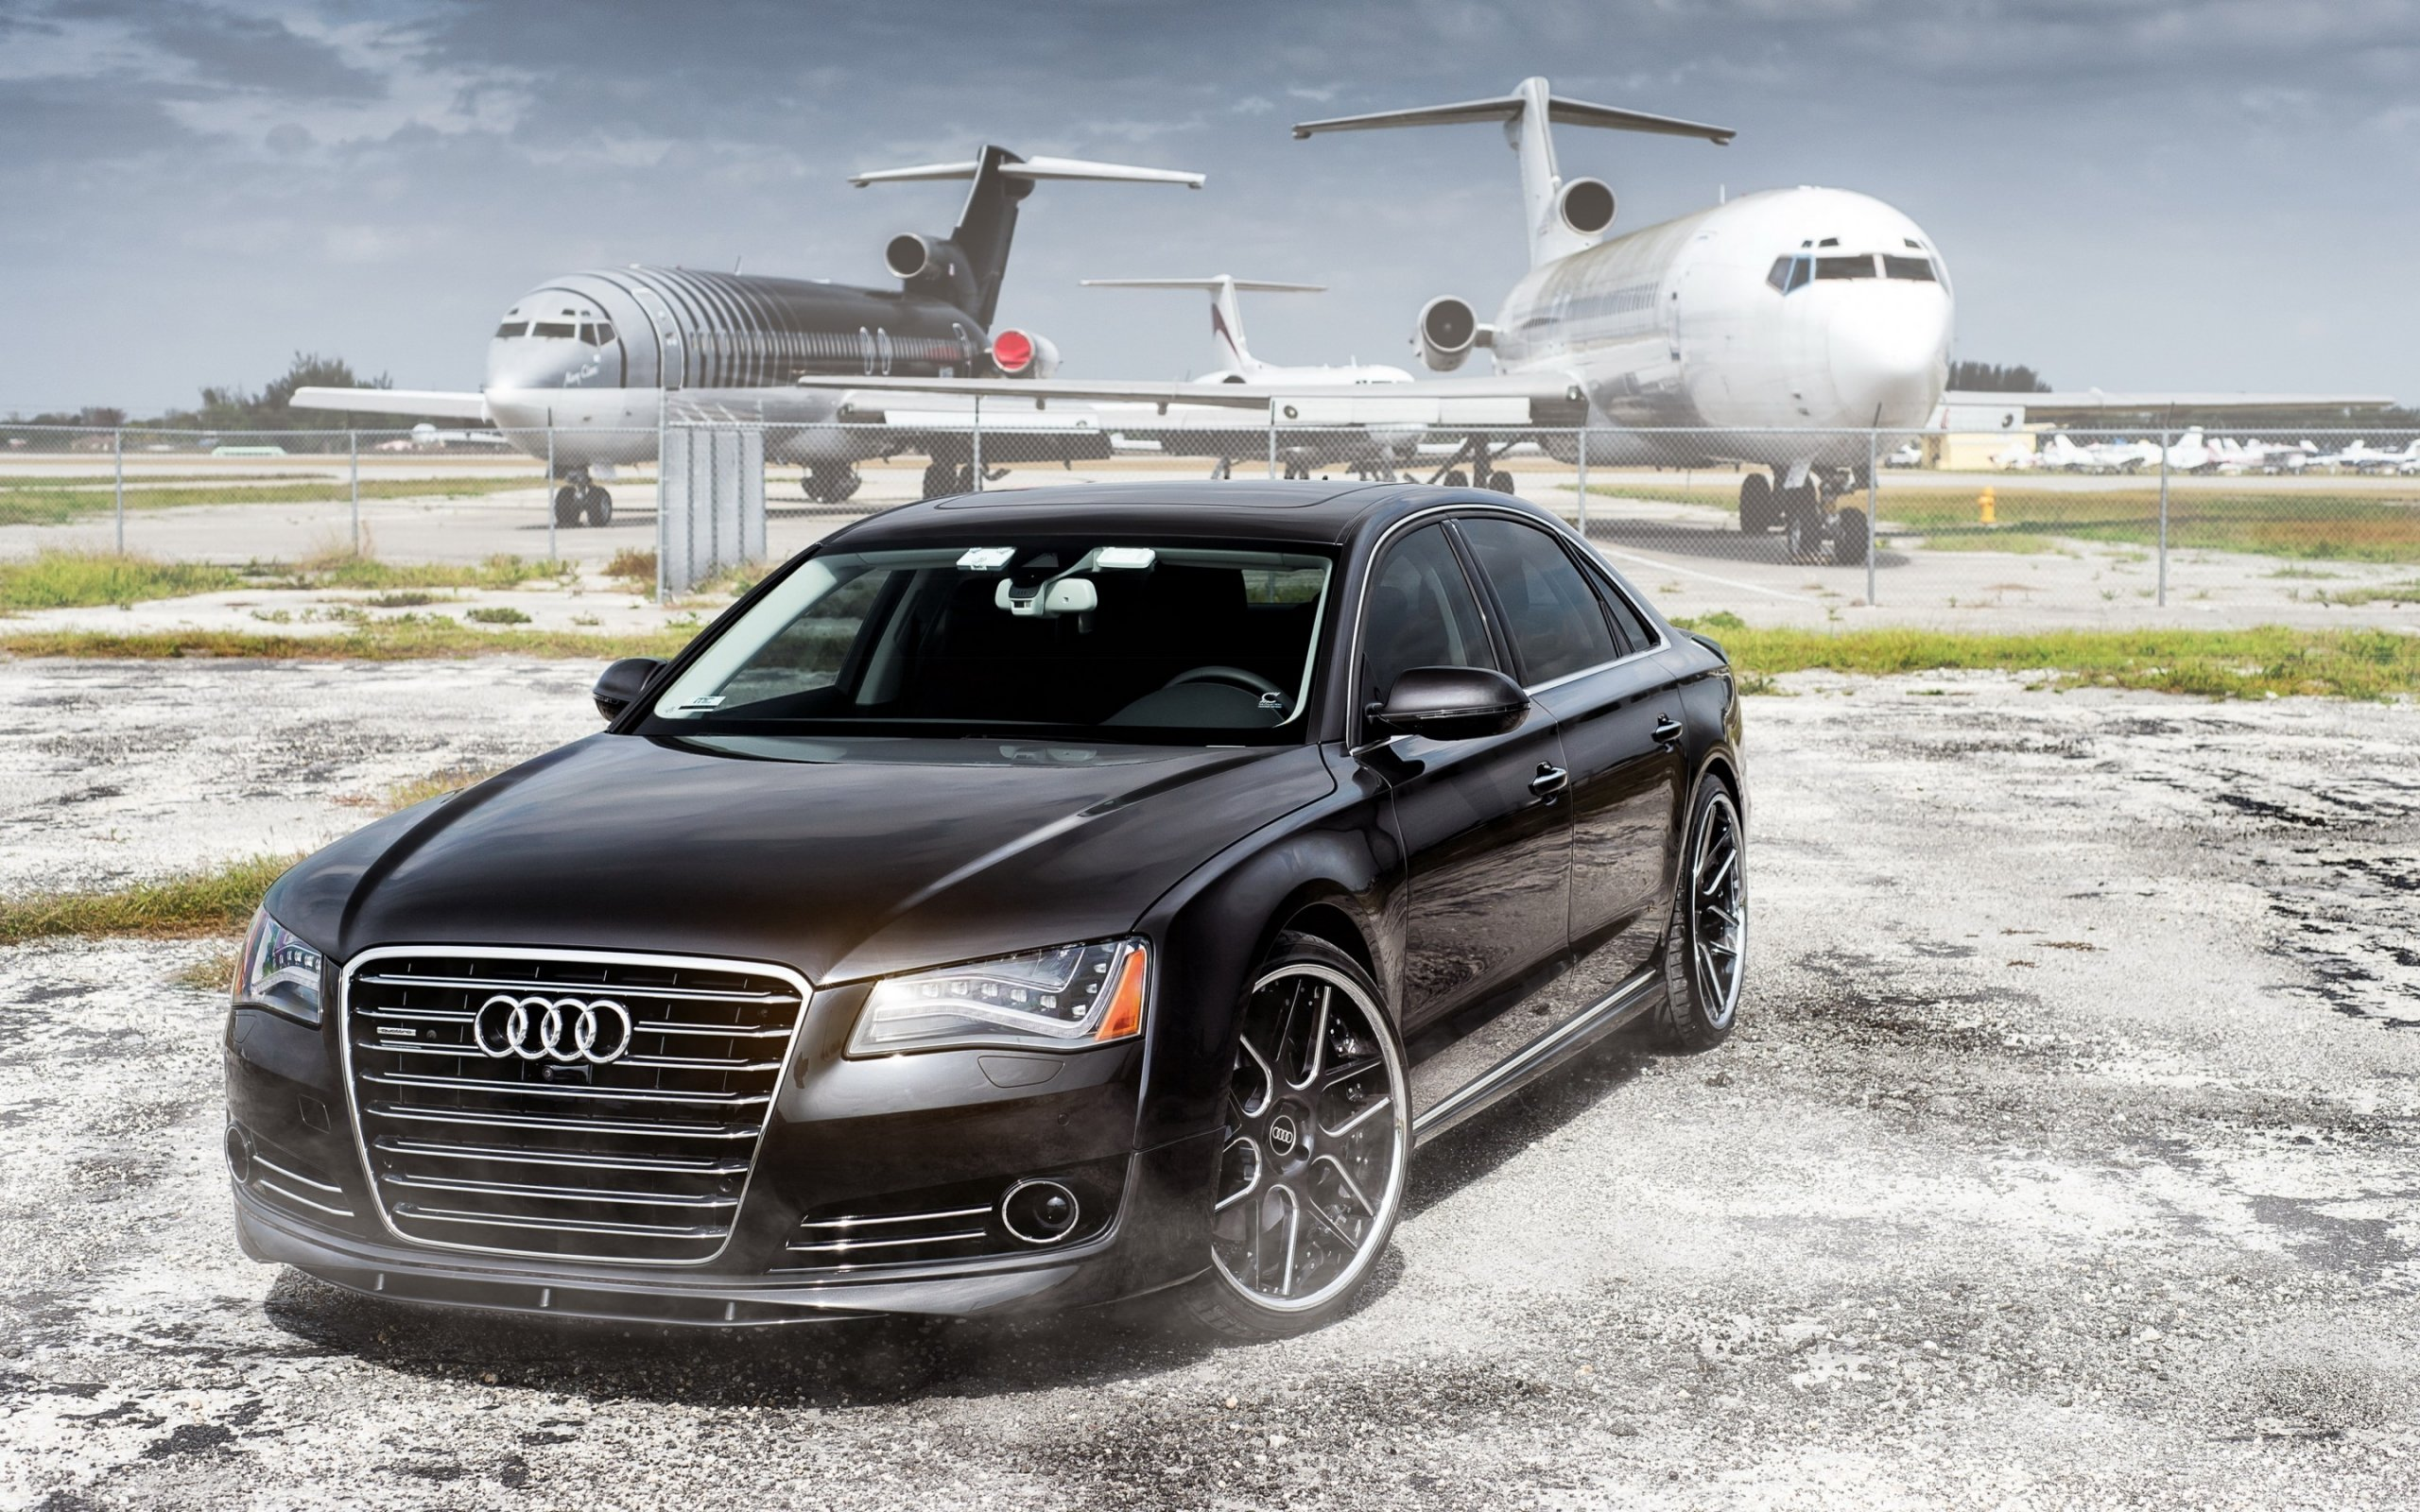 Free Audi A8 high quality wallpaper ID:34233 for hd 2560x1600 desktop